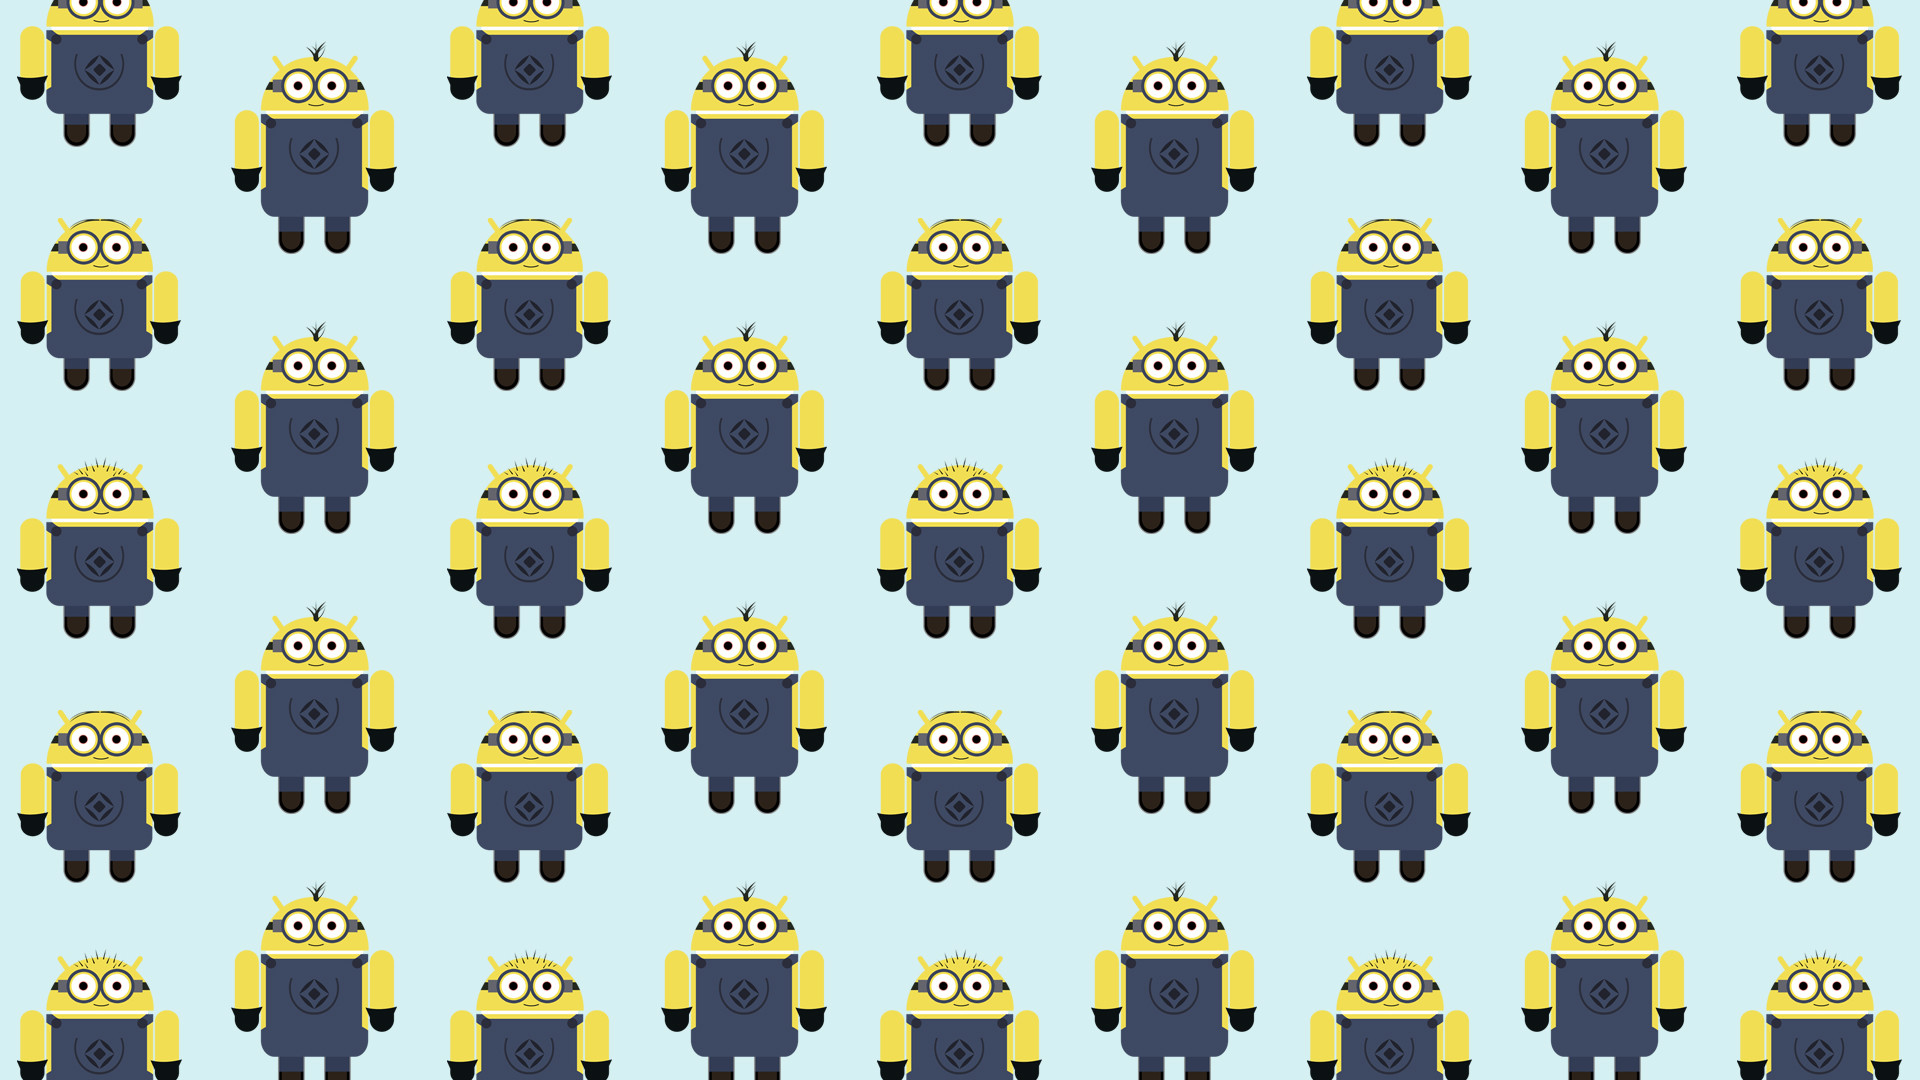 1920x1080 best images about minions background on Pinterest | HD Wallpapers |  Pinterest | Wallpaper, Wallpapers android and Mobile wallpaper